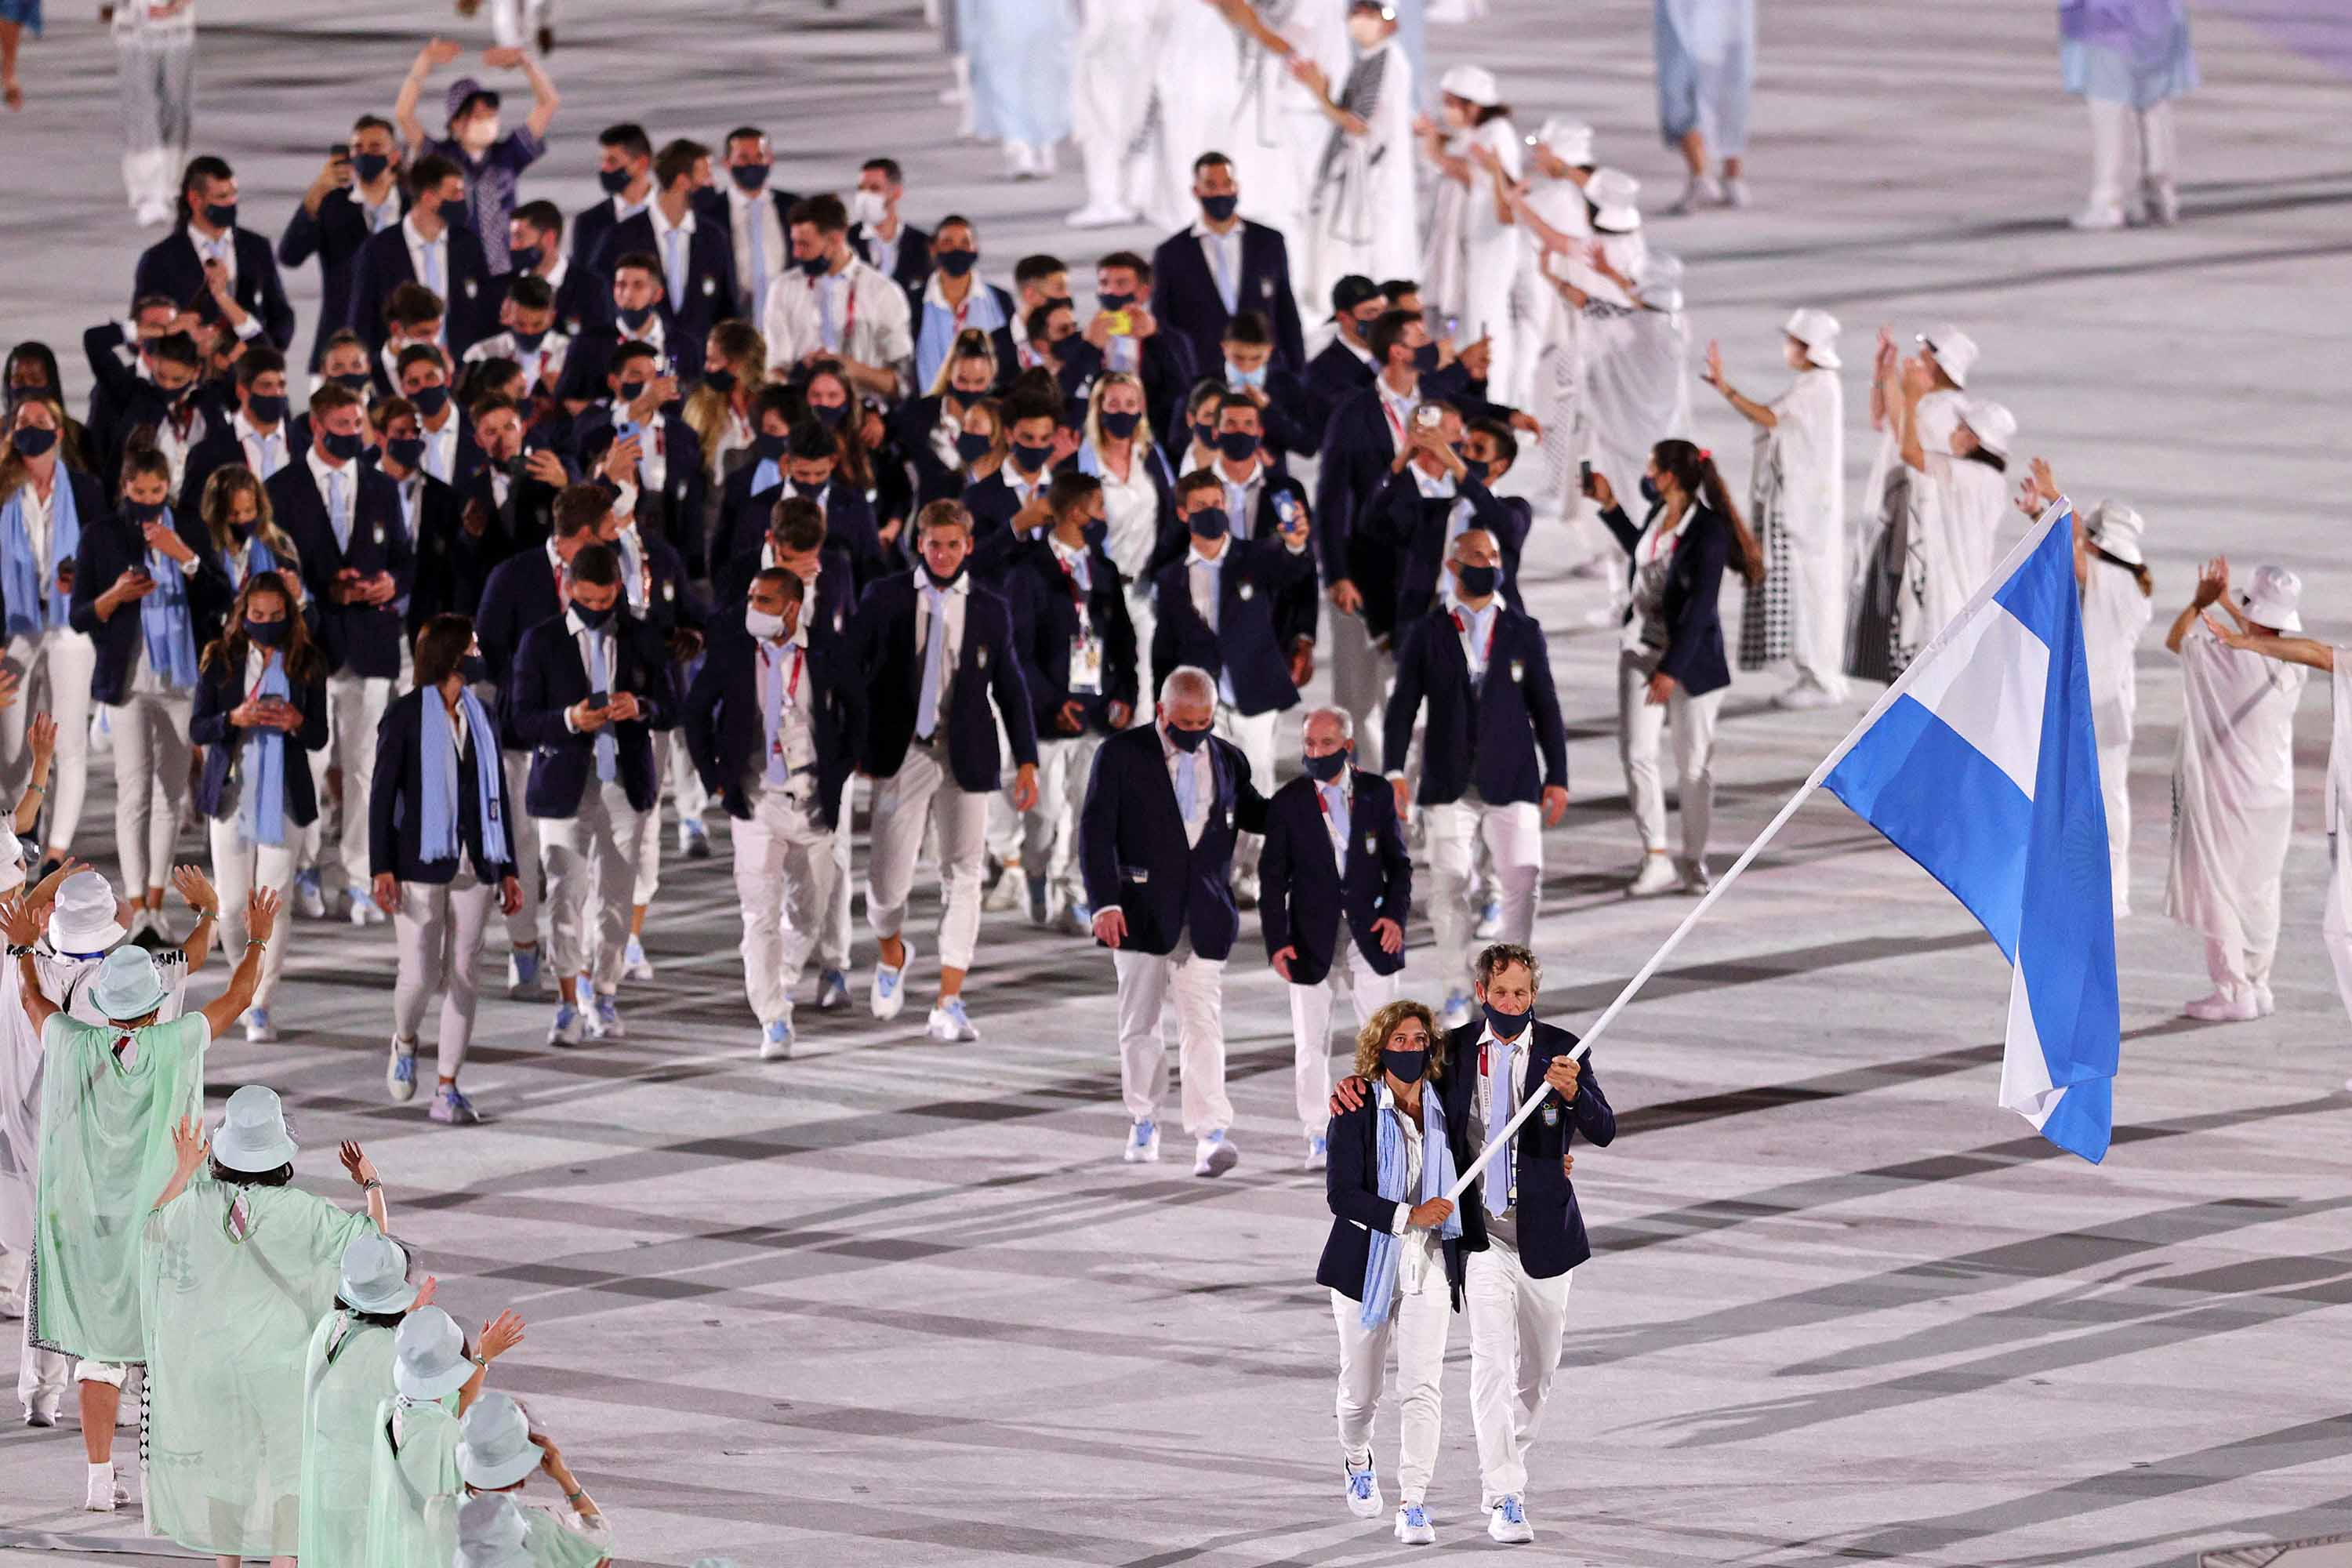 Team Argentina parades during the Opening Ceremony.